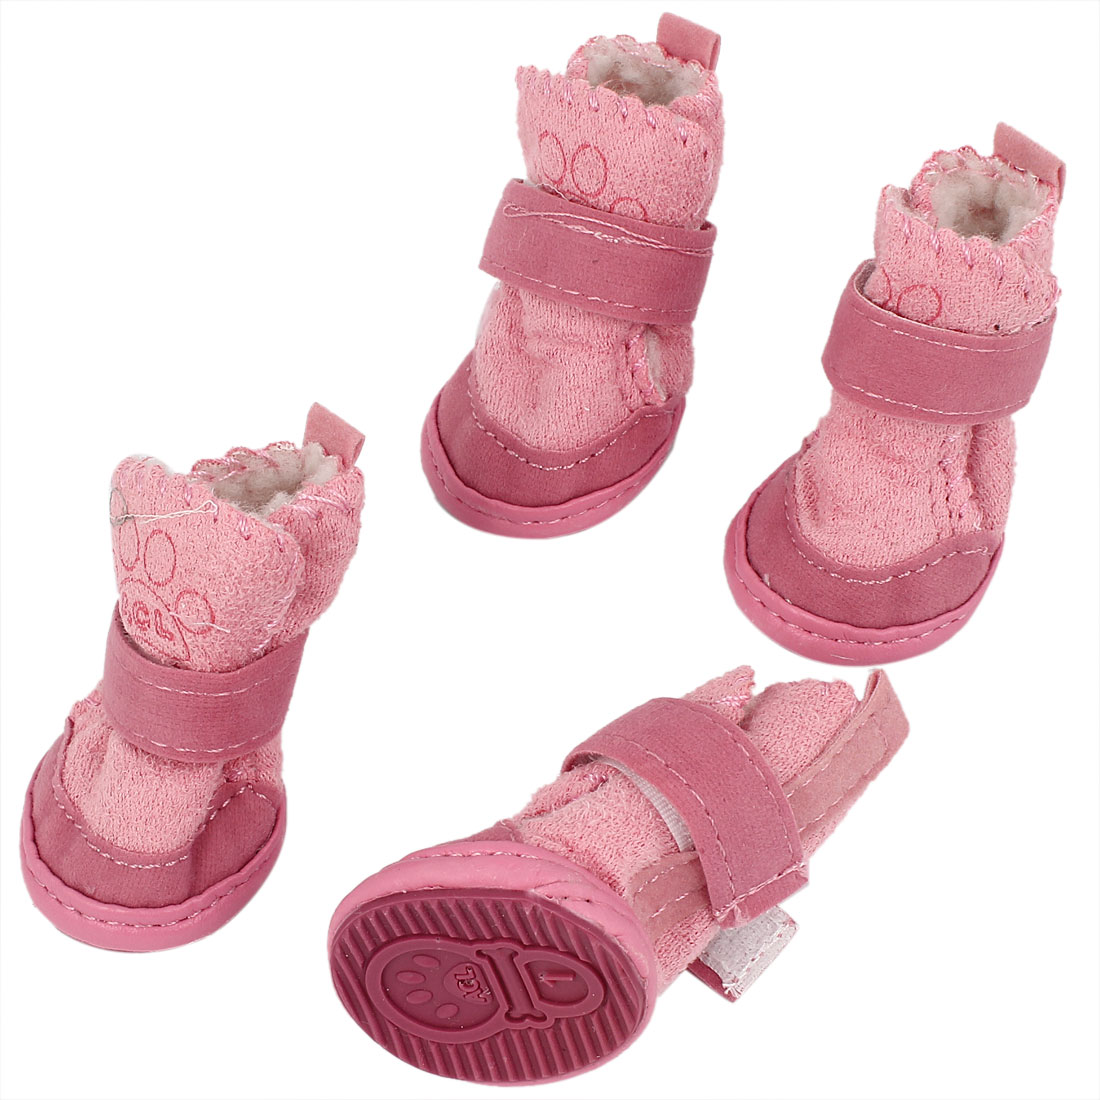 2 Pair Detachable Closure Pet Puppy Dog Shoes Booties Boots Pink Size XXS